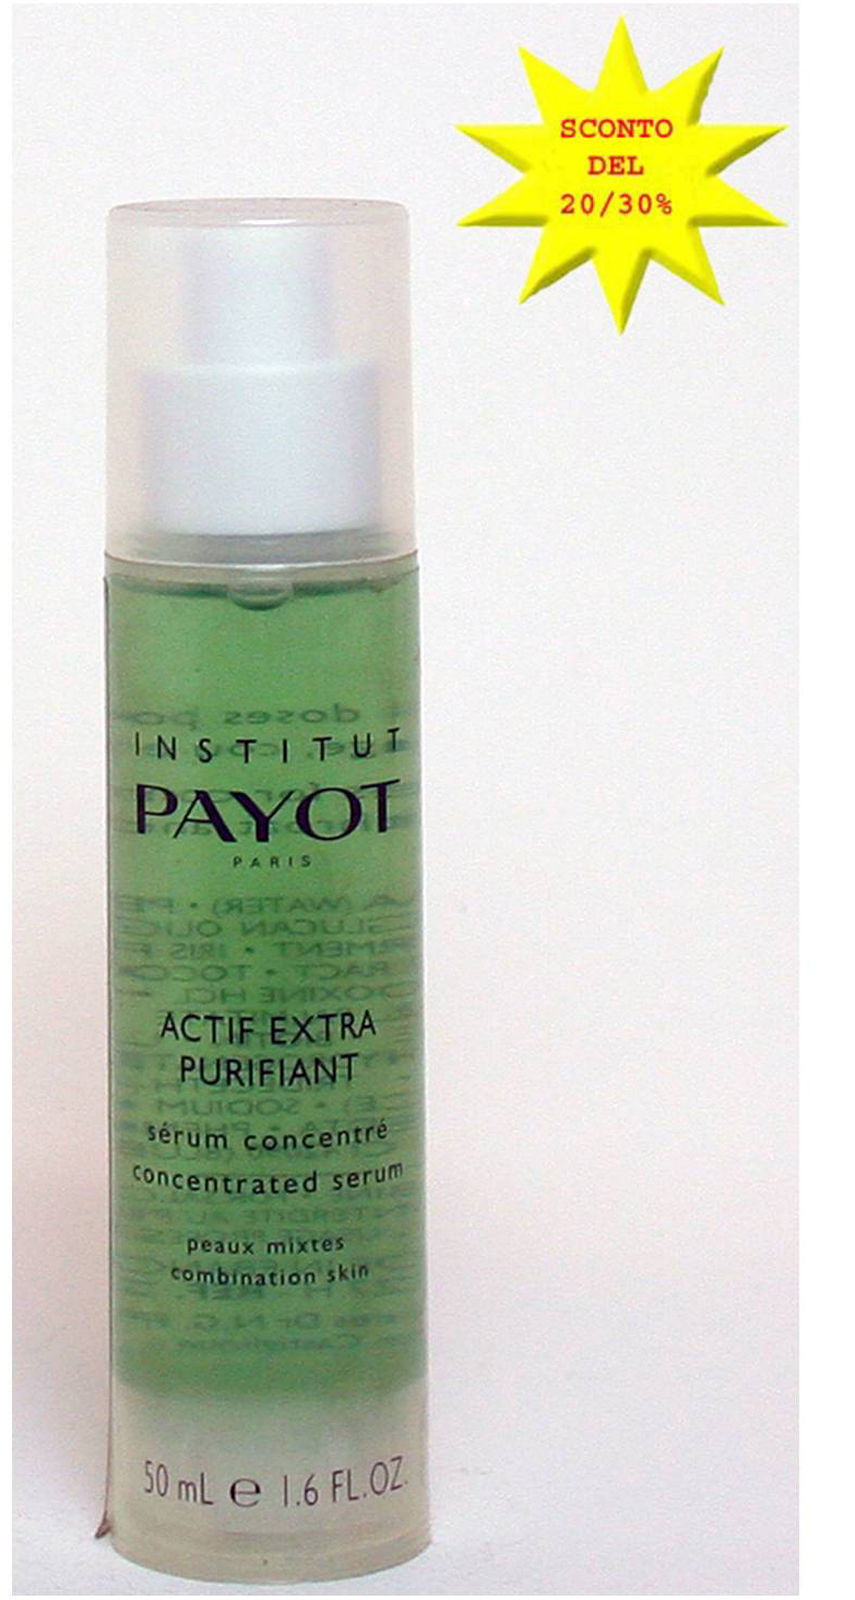 PAYOT ACTIF EXTRA PURIFIANT 50 ml